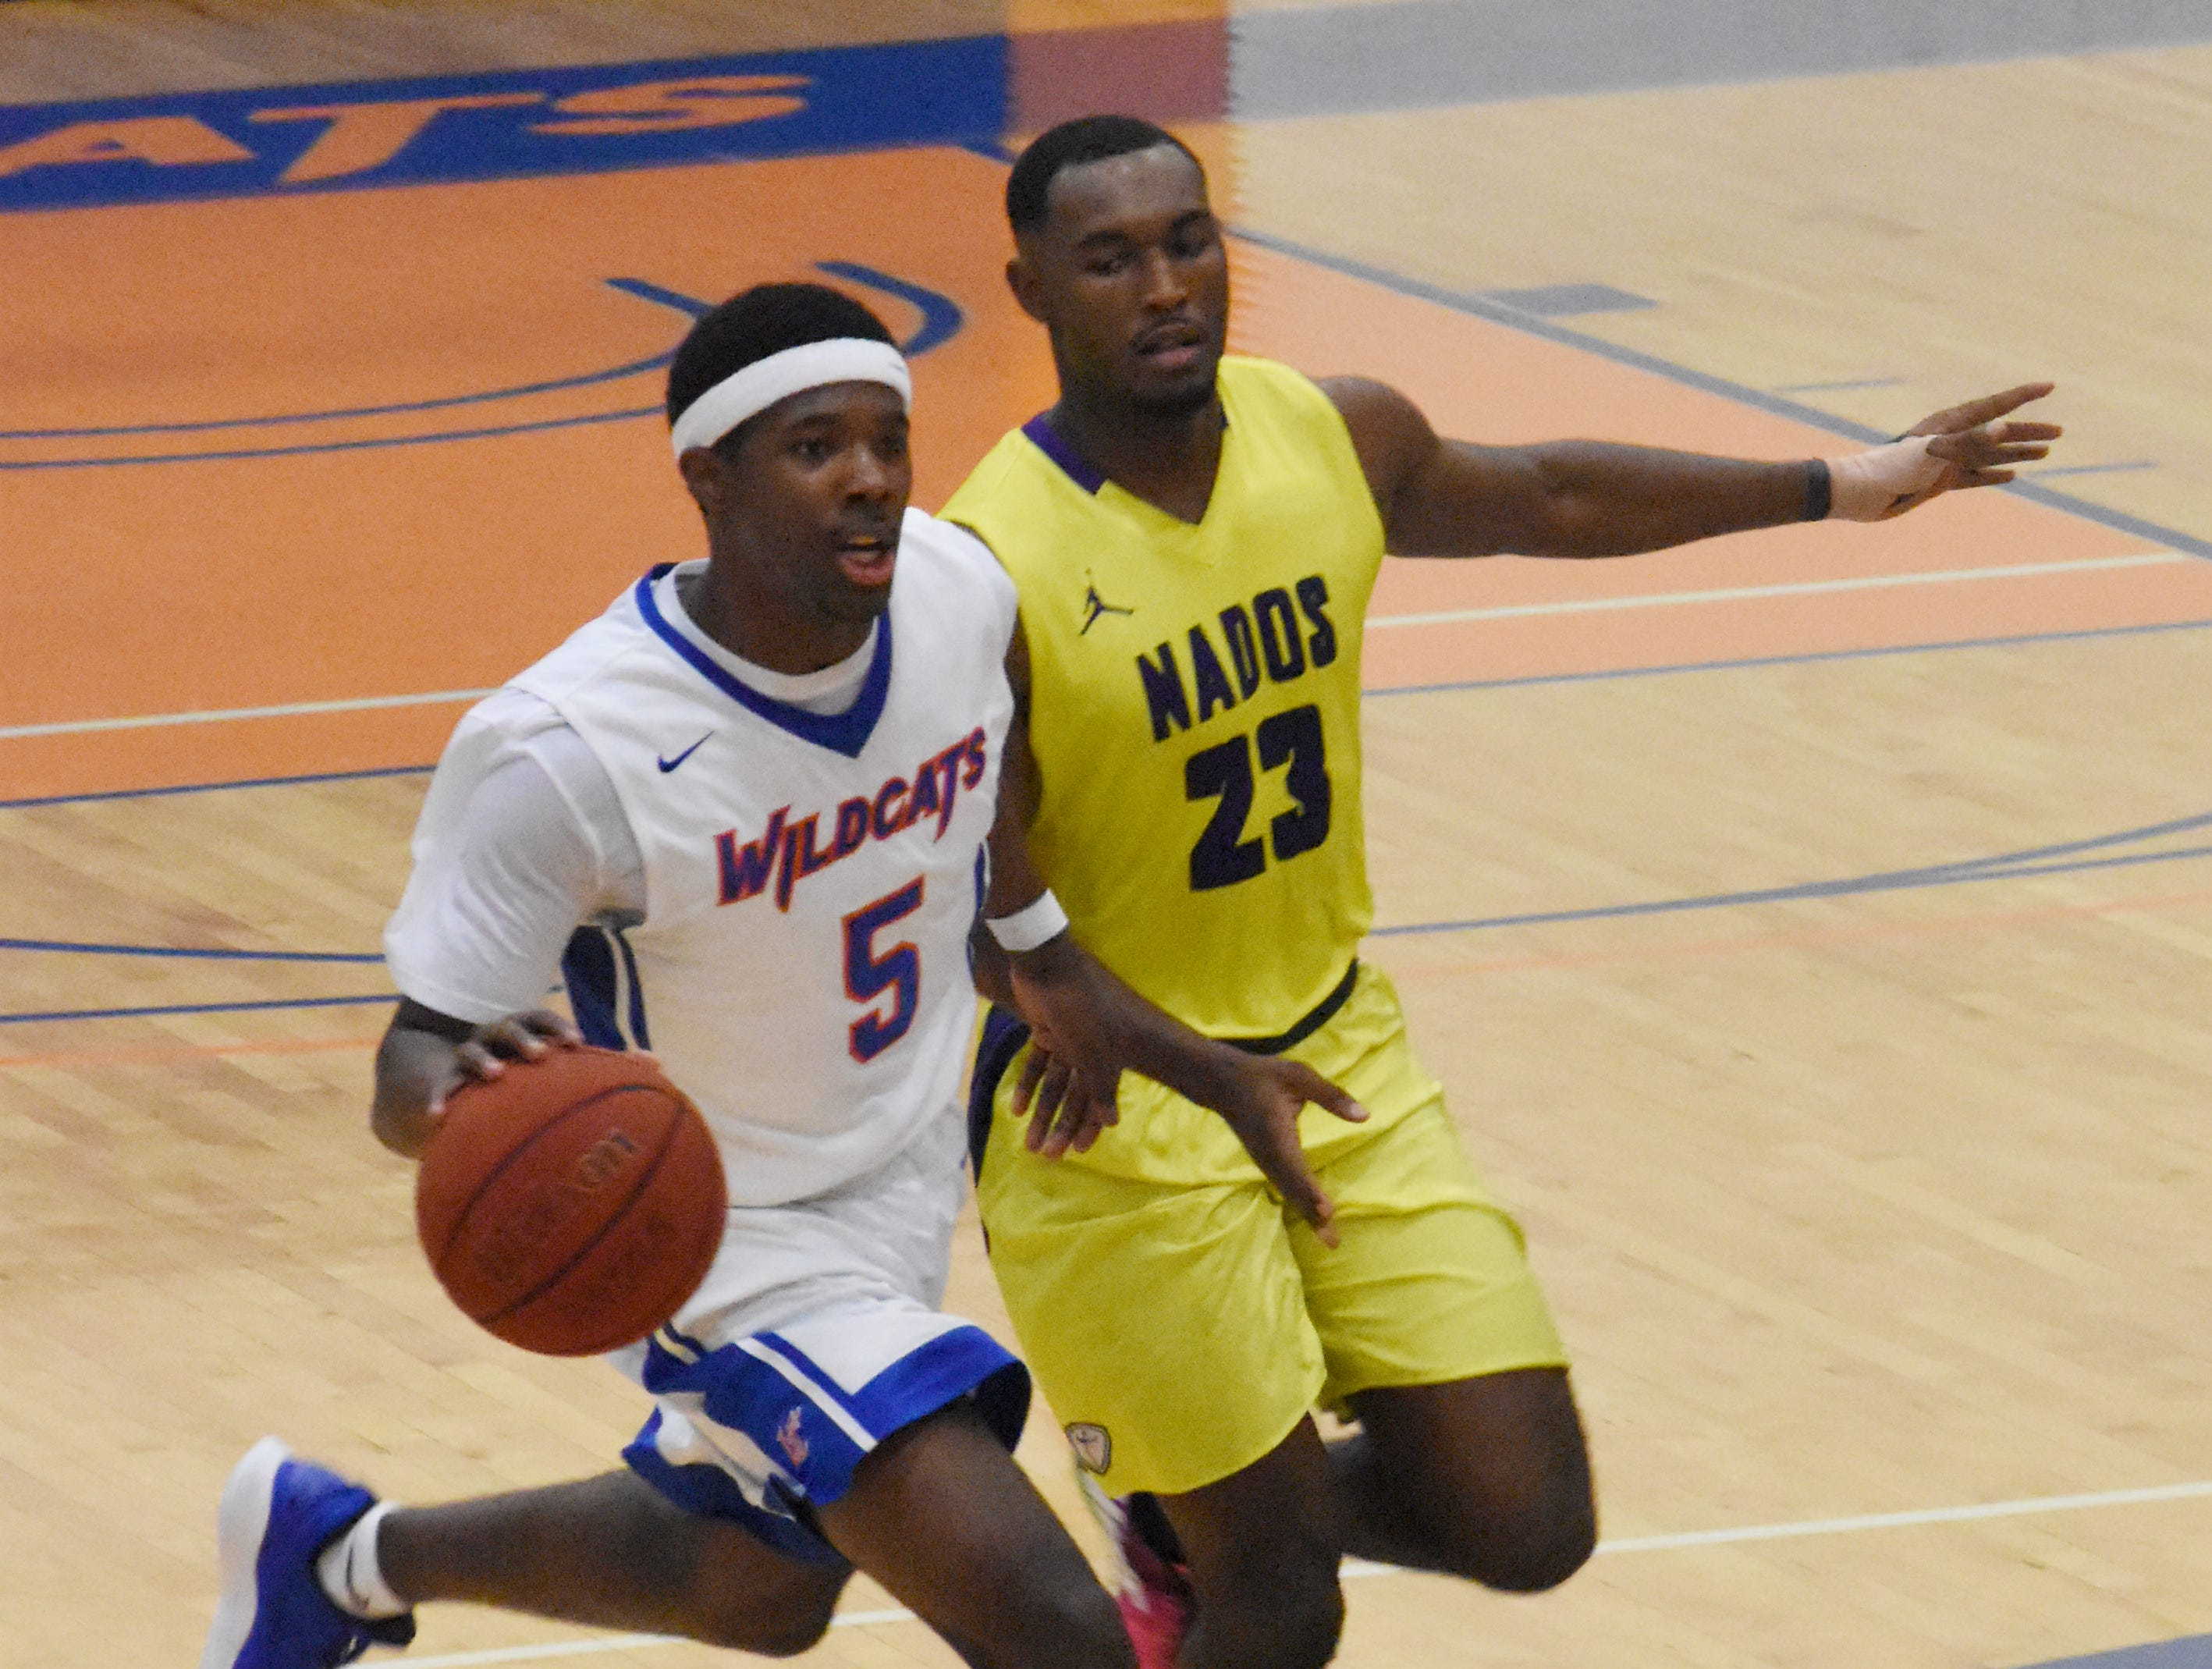 The Wildcats of Louisiana College play the Tornadoes of Concordia University Thursday, Jan. 3, 2019 at H.O. West Fieldhouse on the LC campus in Pineville. Concordia won 65-53.